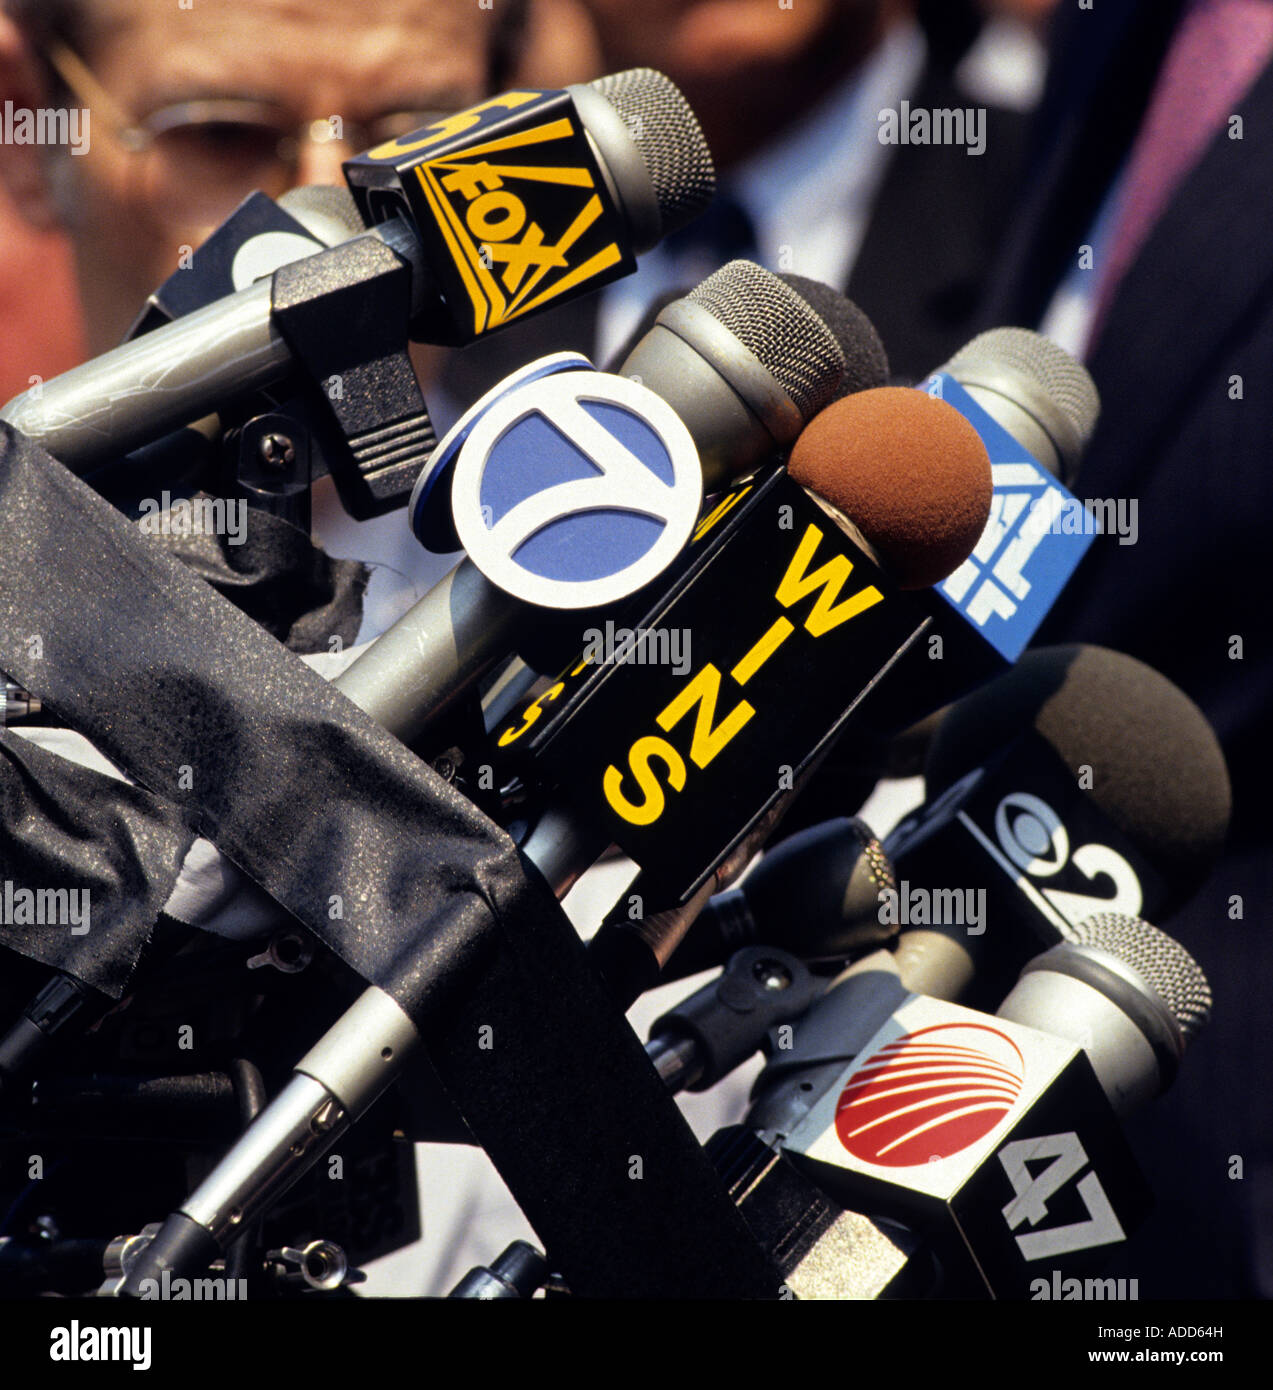 Microphones from media outlets are bundled to a stand during an outdoor press conference - Stock Image